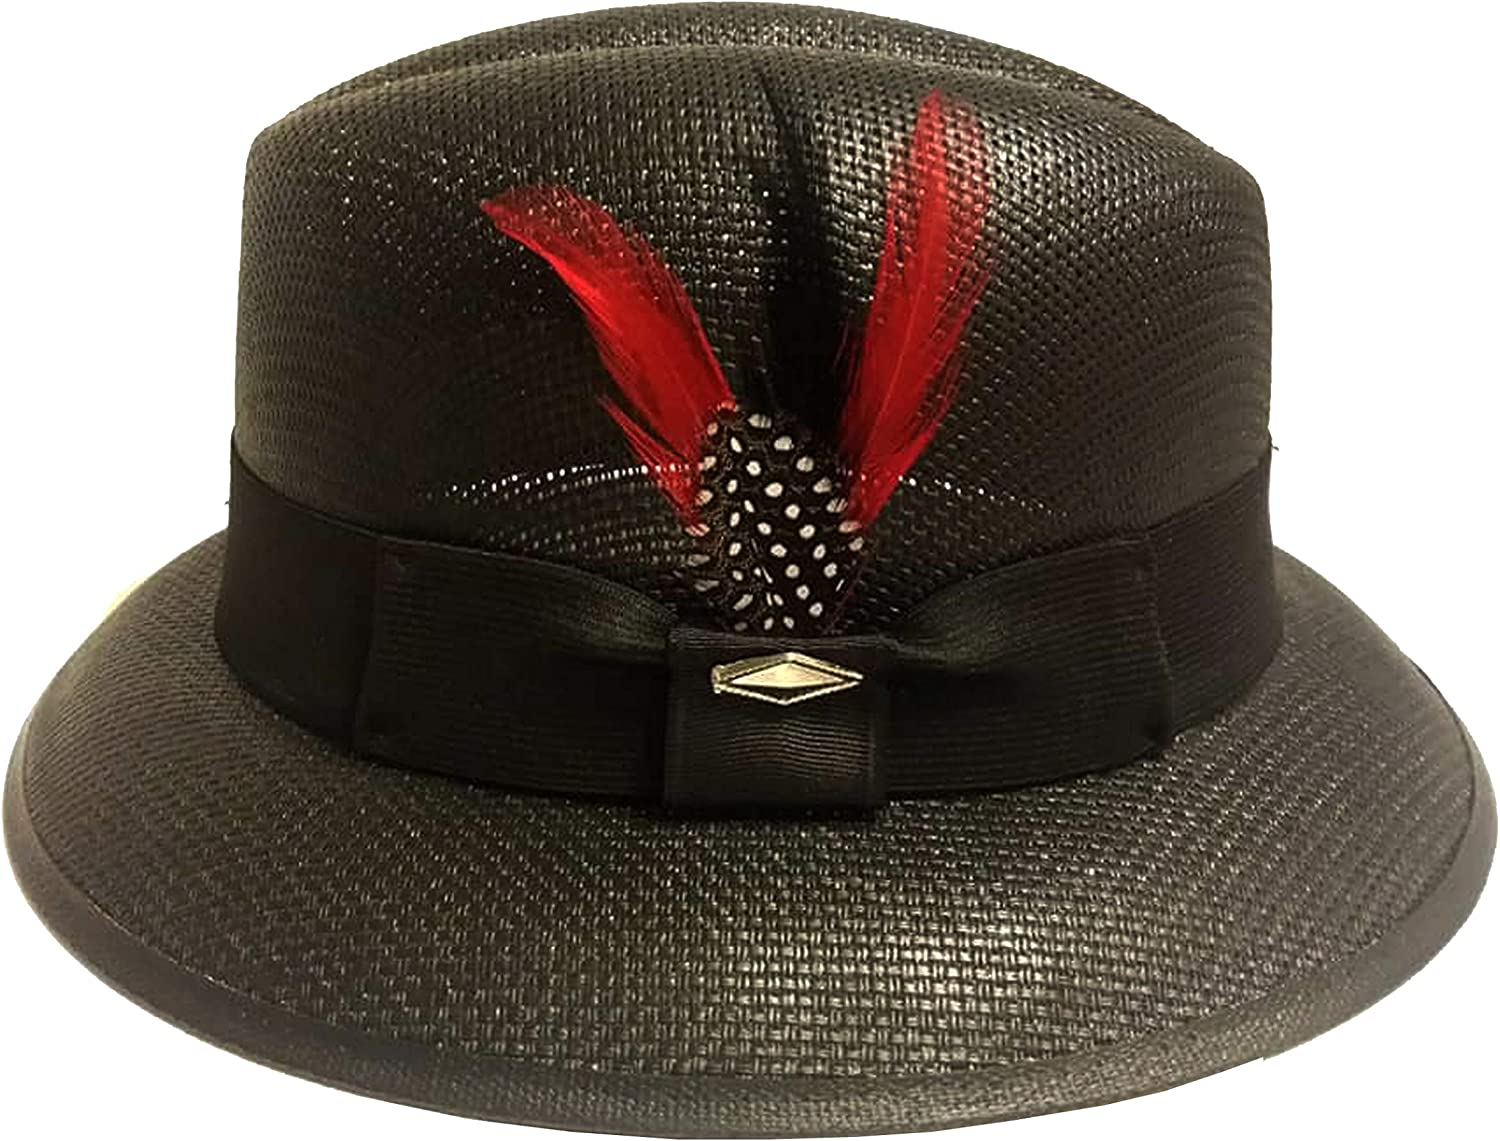 Black with Red Feather Pachuco Lowrider Fedora Style Brim Hat